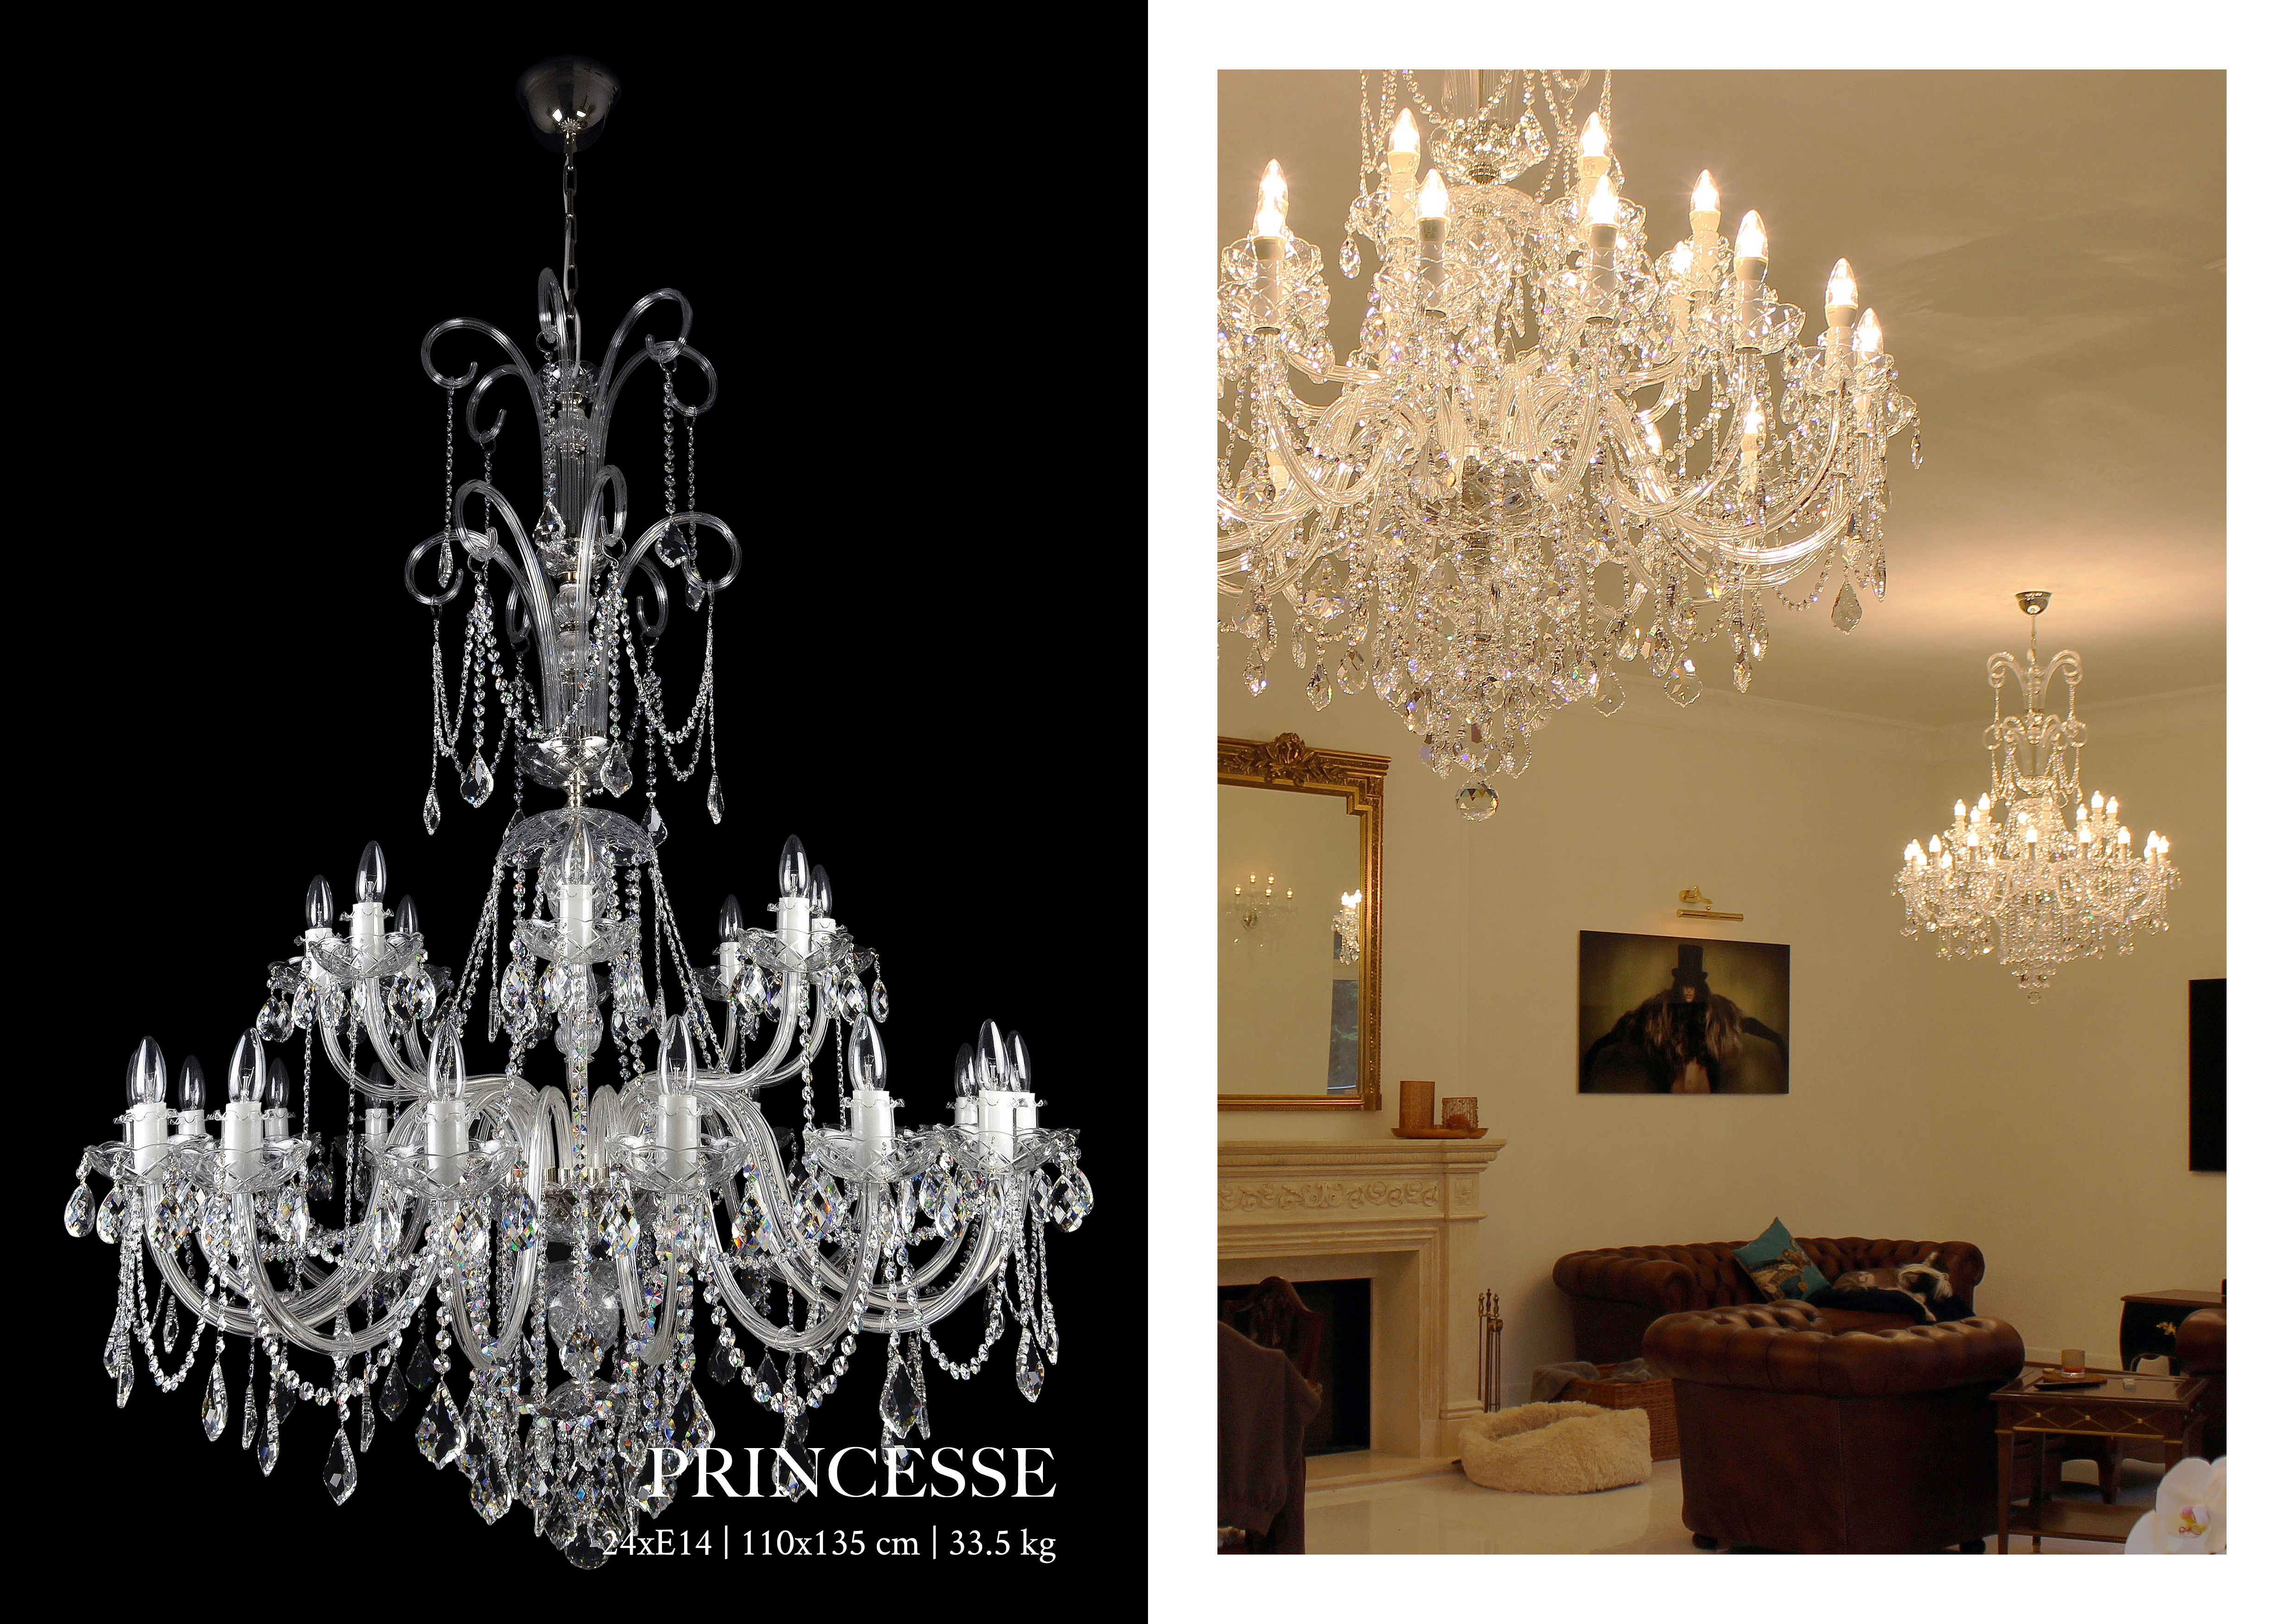 Introducing The Princesse Collection From Our Upcoming Catalogue